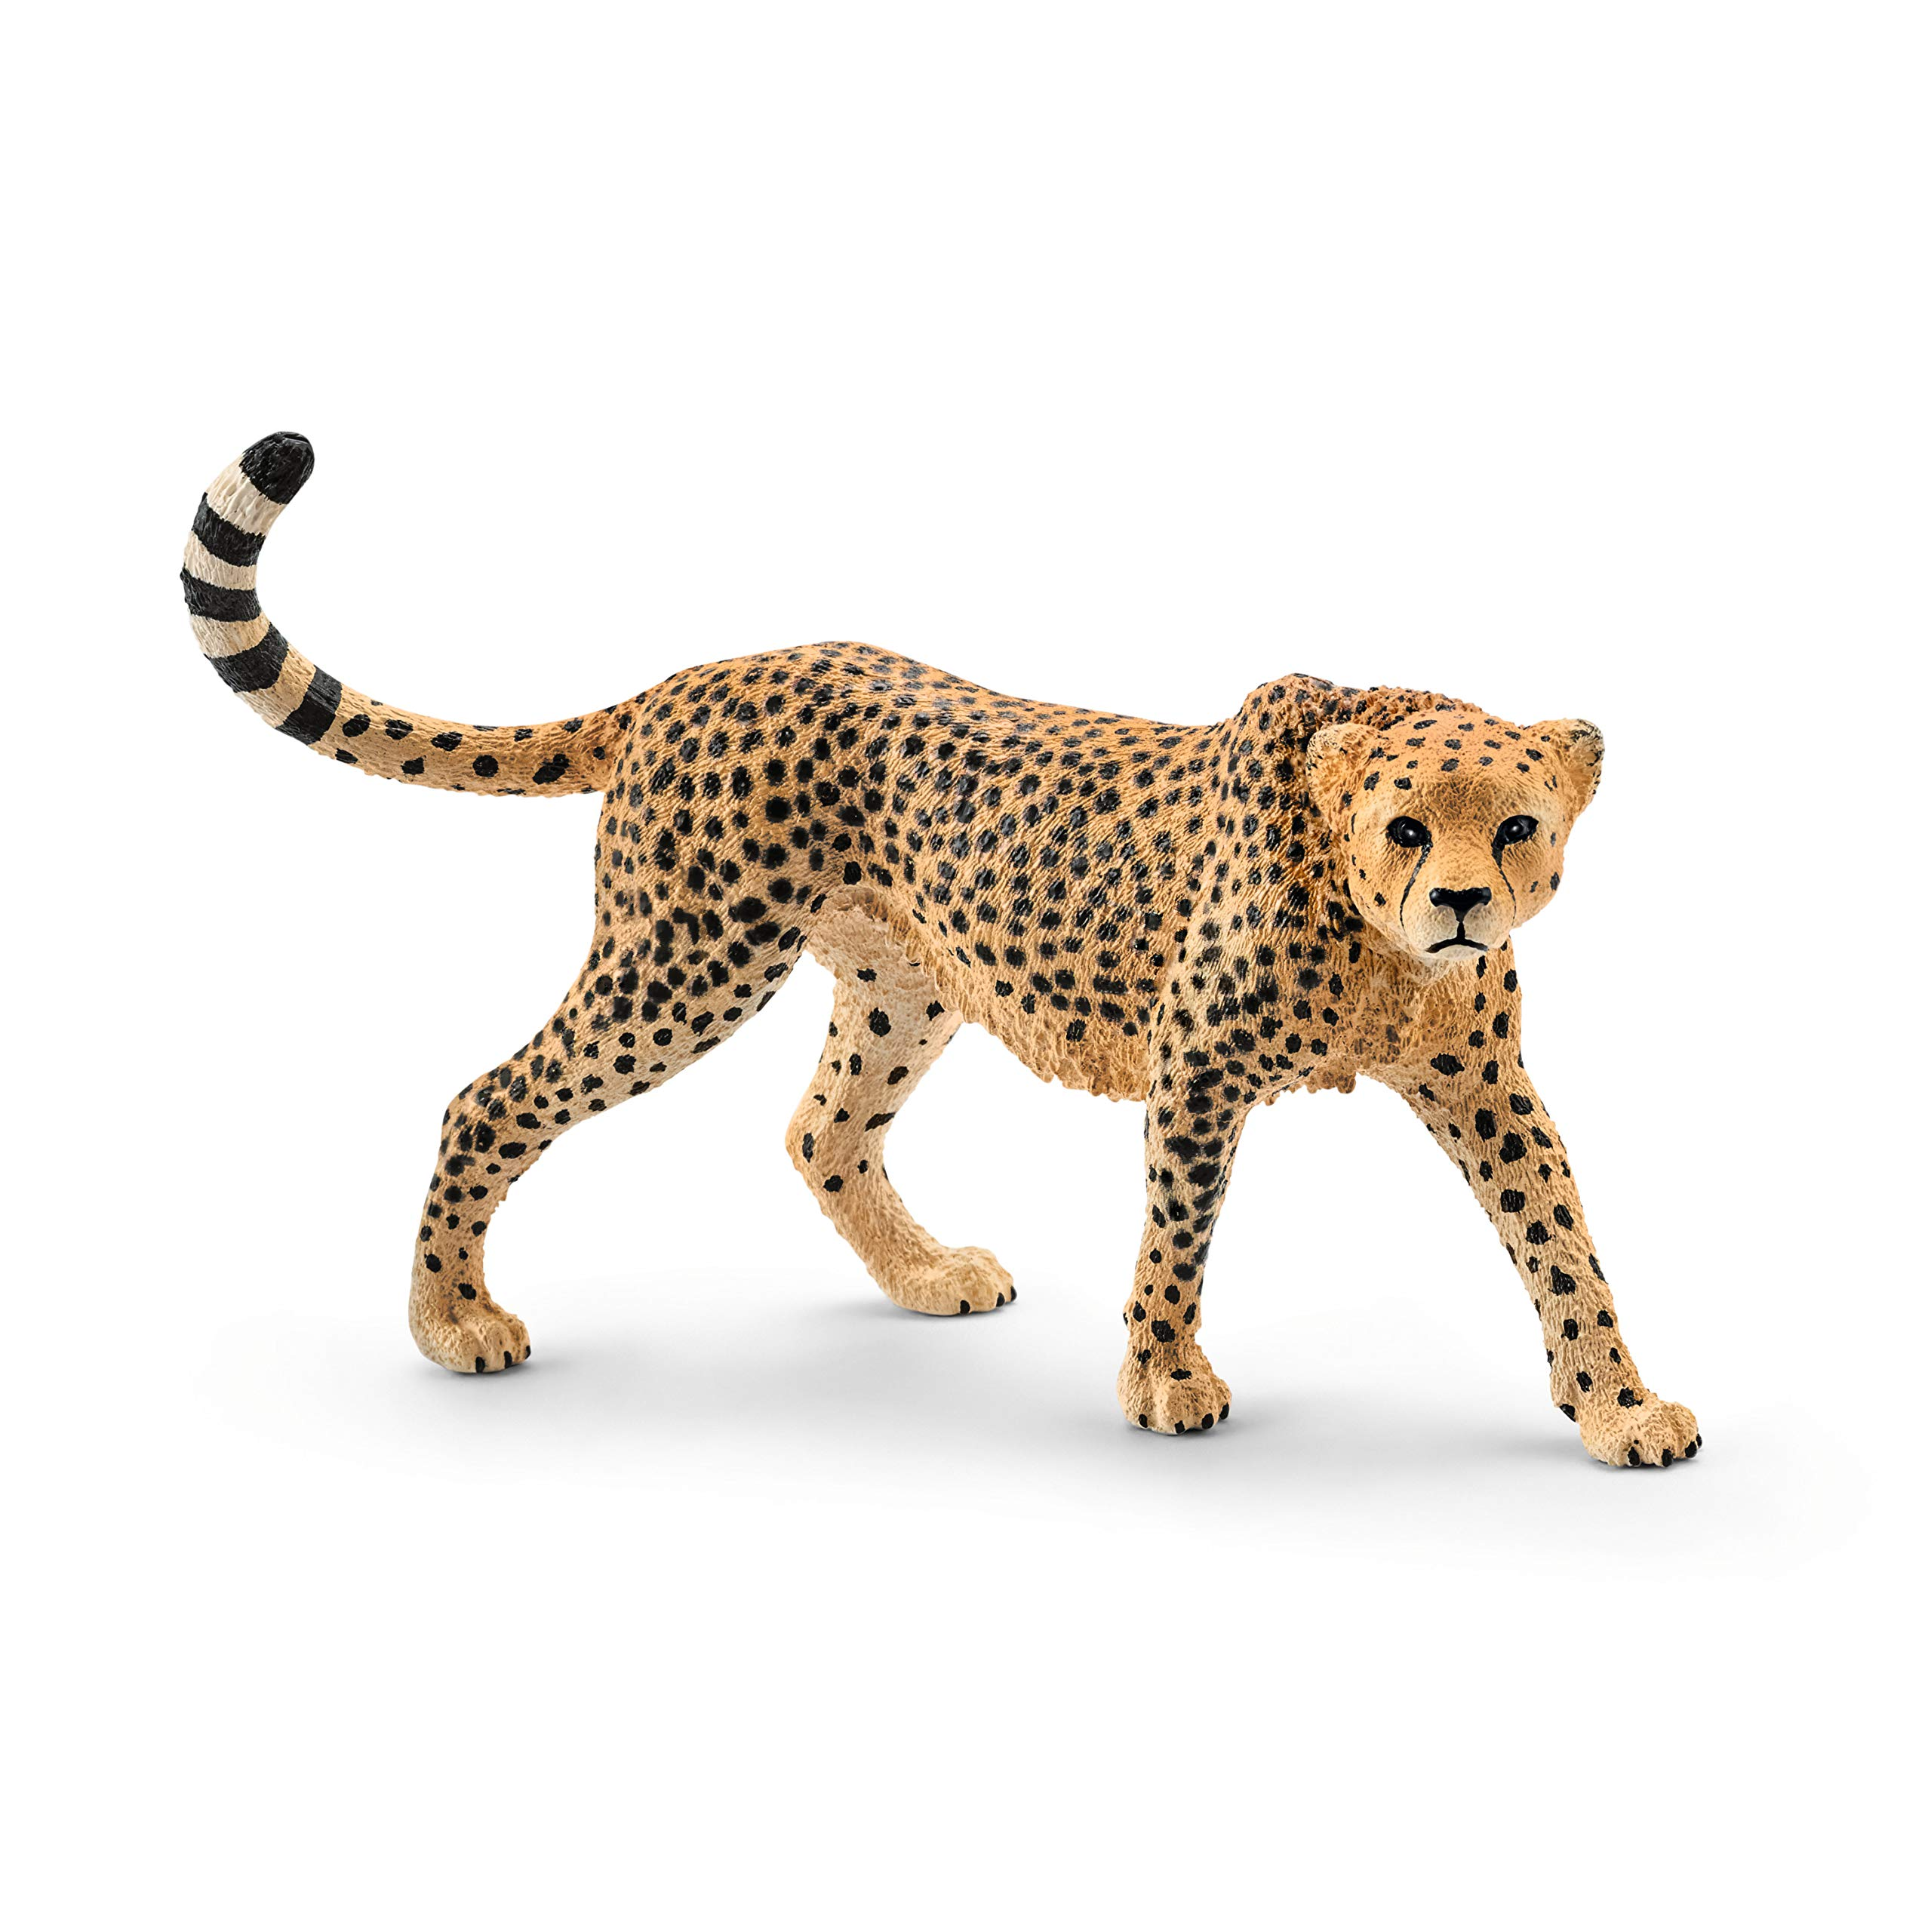 Schleich Wild Life, Animal Figurine, Animal Toys for Boys and Girls 3-8 years old, Female Cheetah